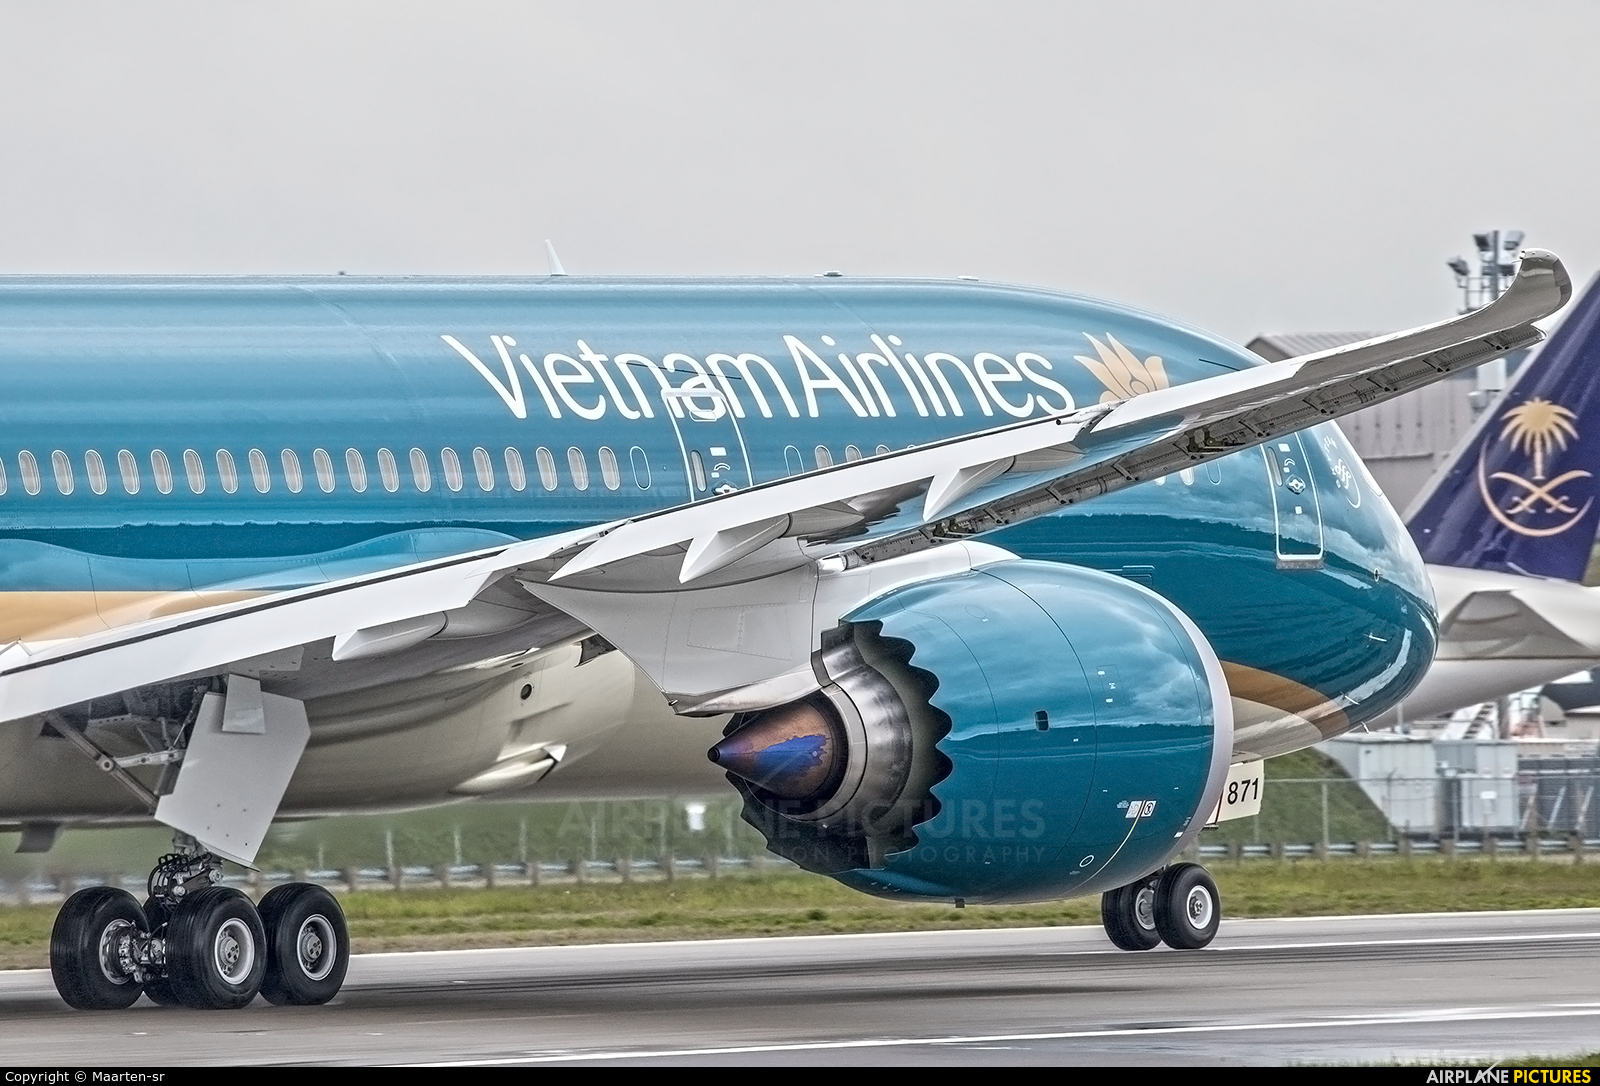 Vietnam Airlines VN-A871 aircraft at Everett - Snohomish County / Paine Field